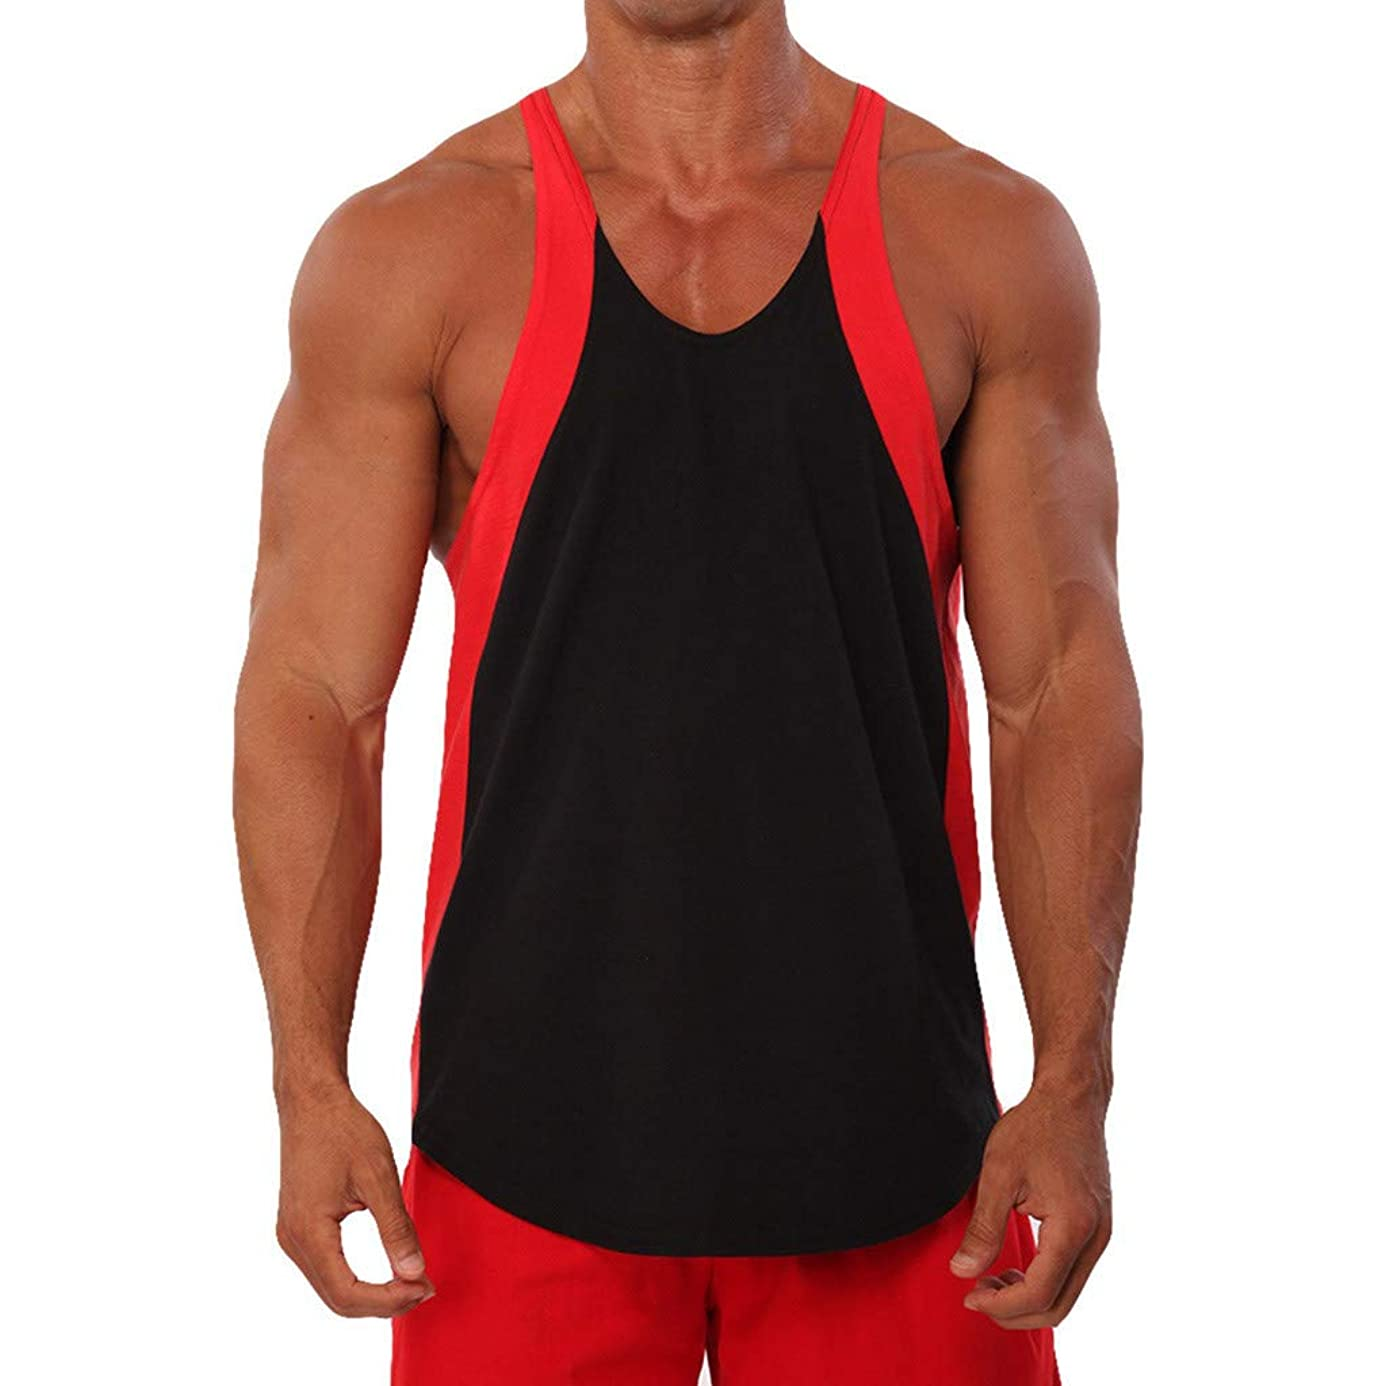 Corriee Male Sport Vest Mens Tank Top for Bodybuilding Gym Athletic Training Shirts ggt7740853